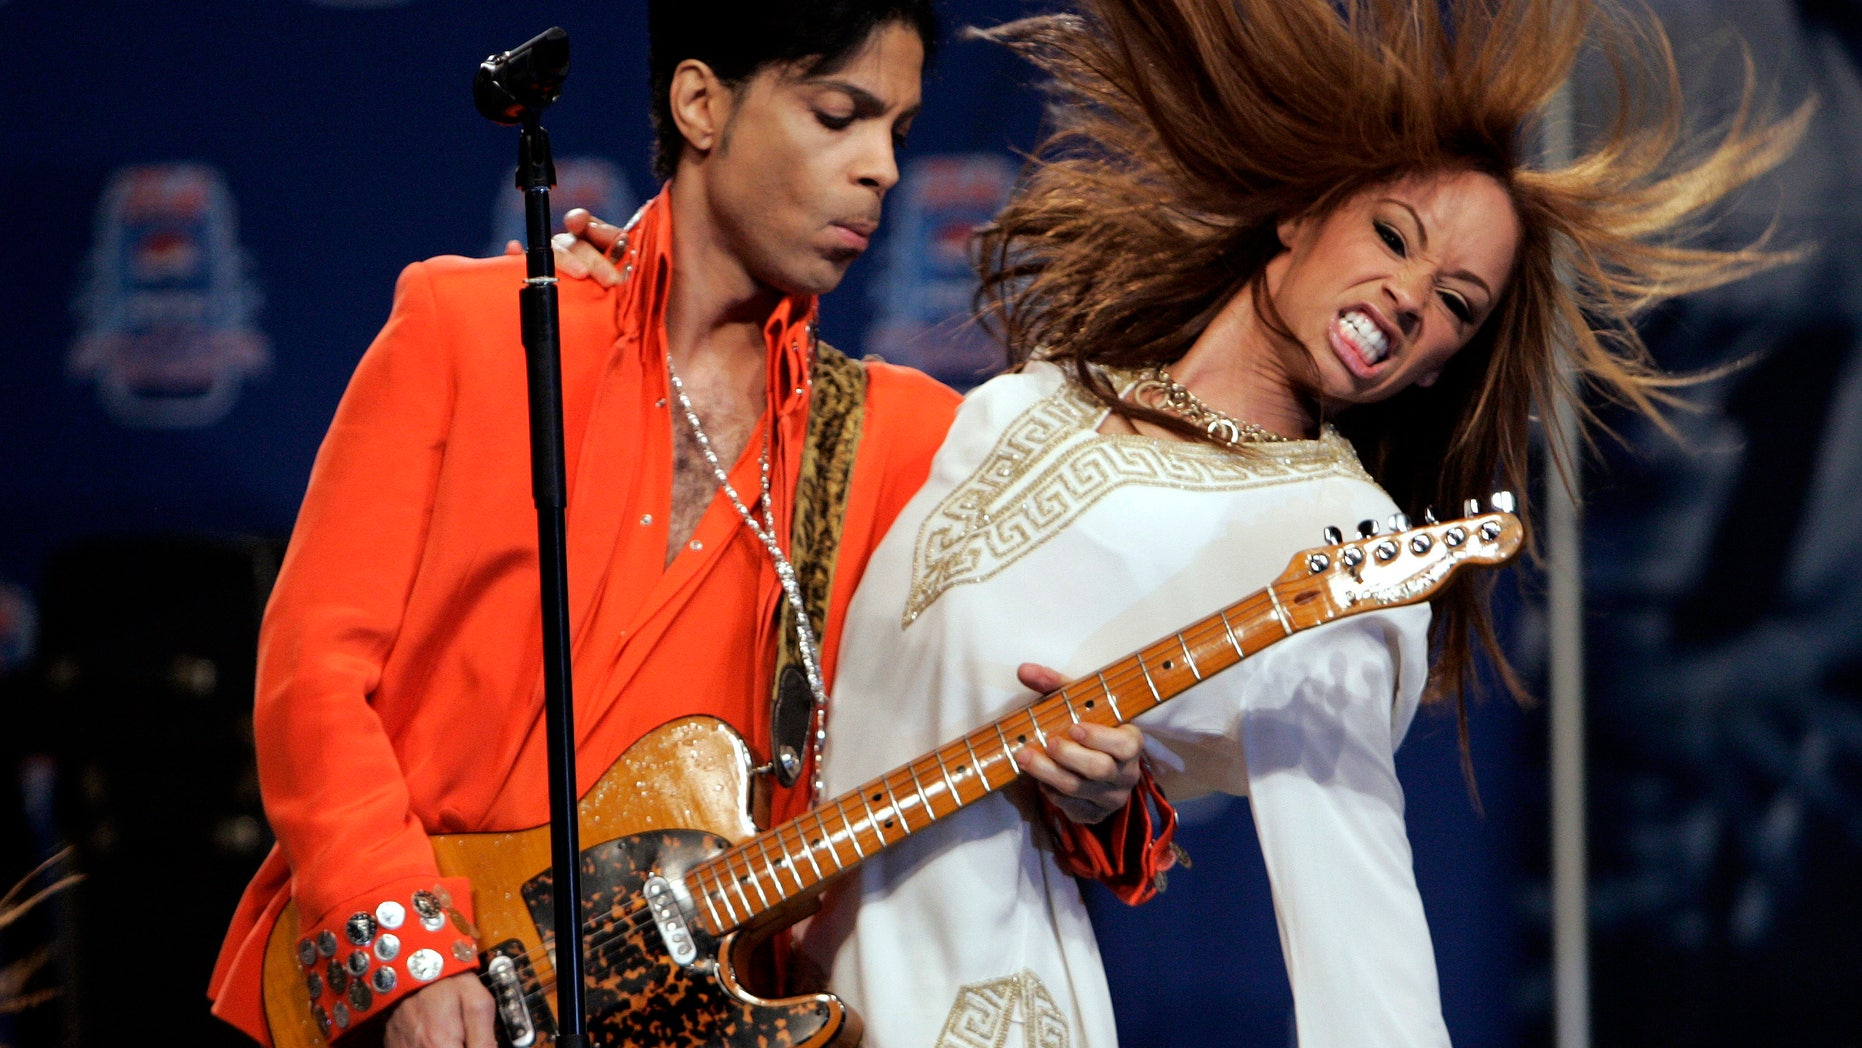 Musician Prince (L) performs for members of the news media in Miami Beach, Florida February 1, 2007.  Prince will be the halftime entertainment at Super Bowl XLI to be played February 4.   REUTERS/Brian Snyder    (UNITED STATES) - RTR1LVTF